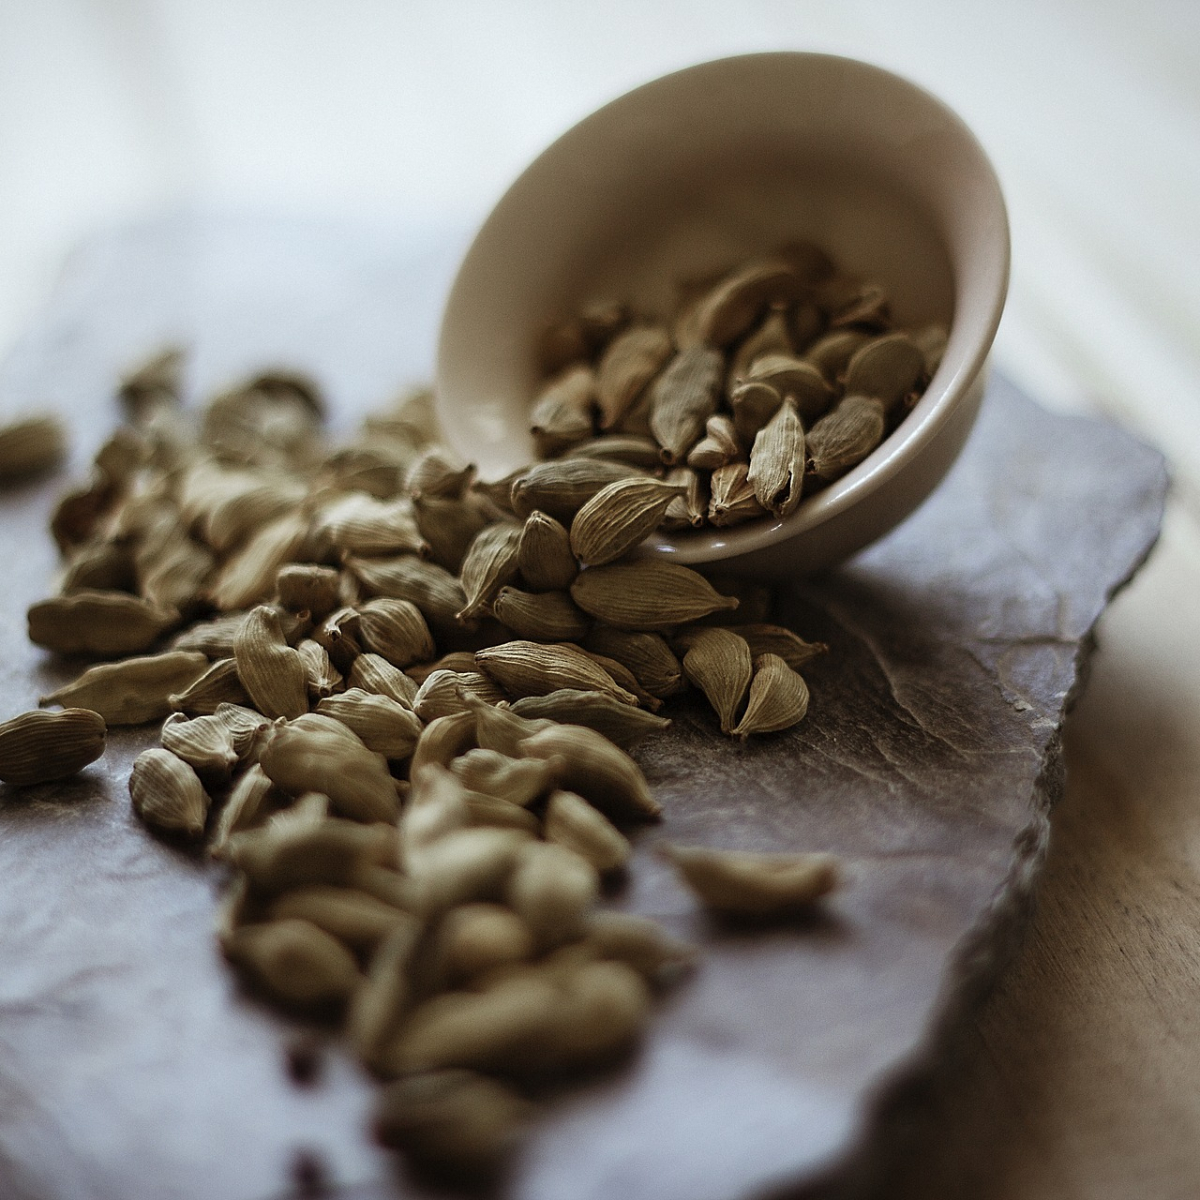 High Blood Pressure: Here's why you should include cardamom in your diet